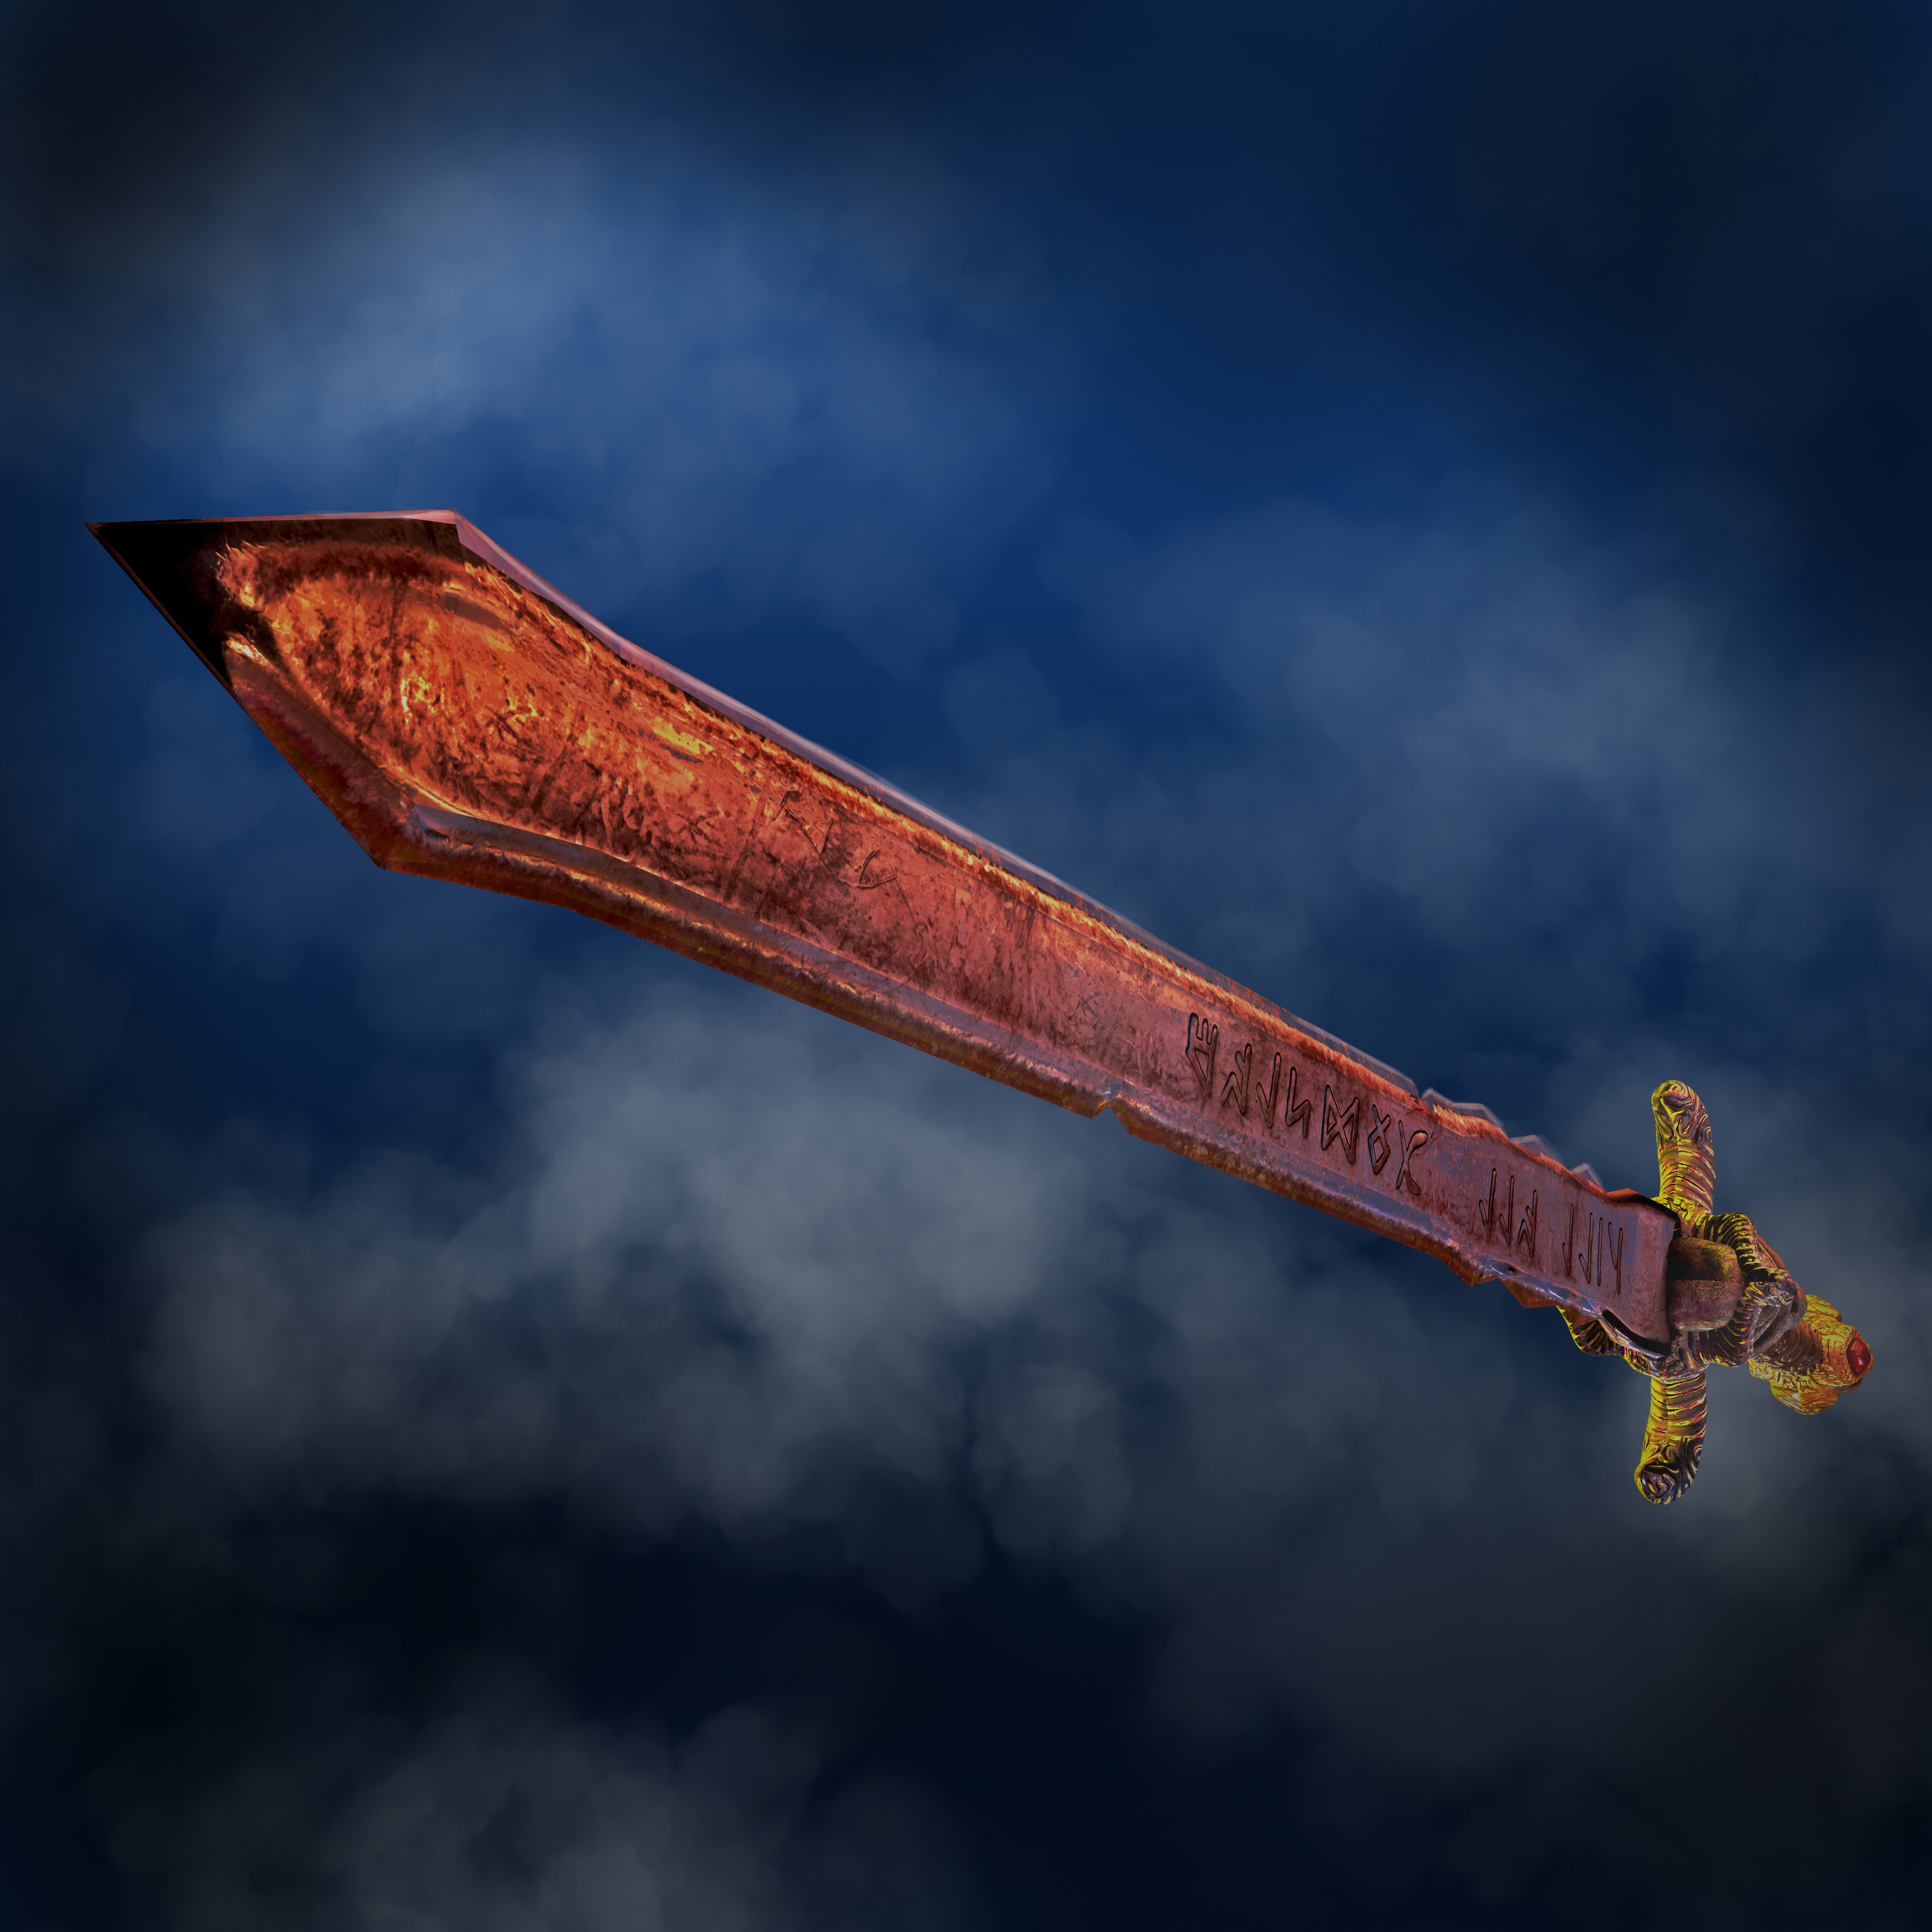 Been practising with Arnold renderer yesterday. Modelled this wee little low poly sword and textured it yesterday.